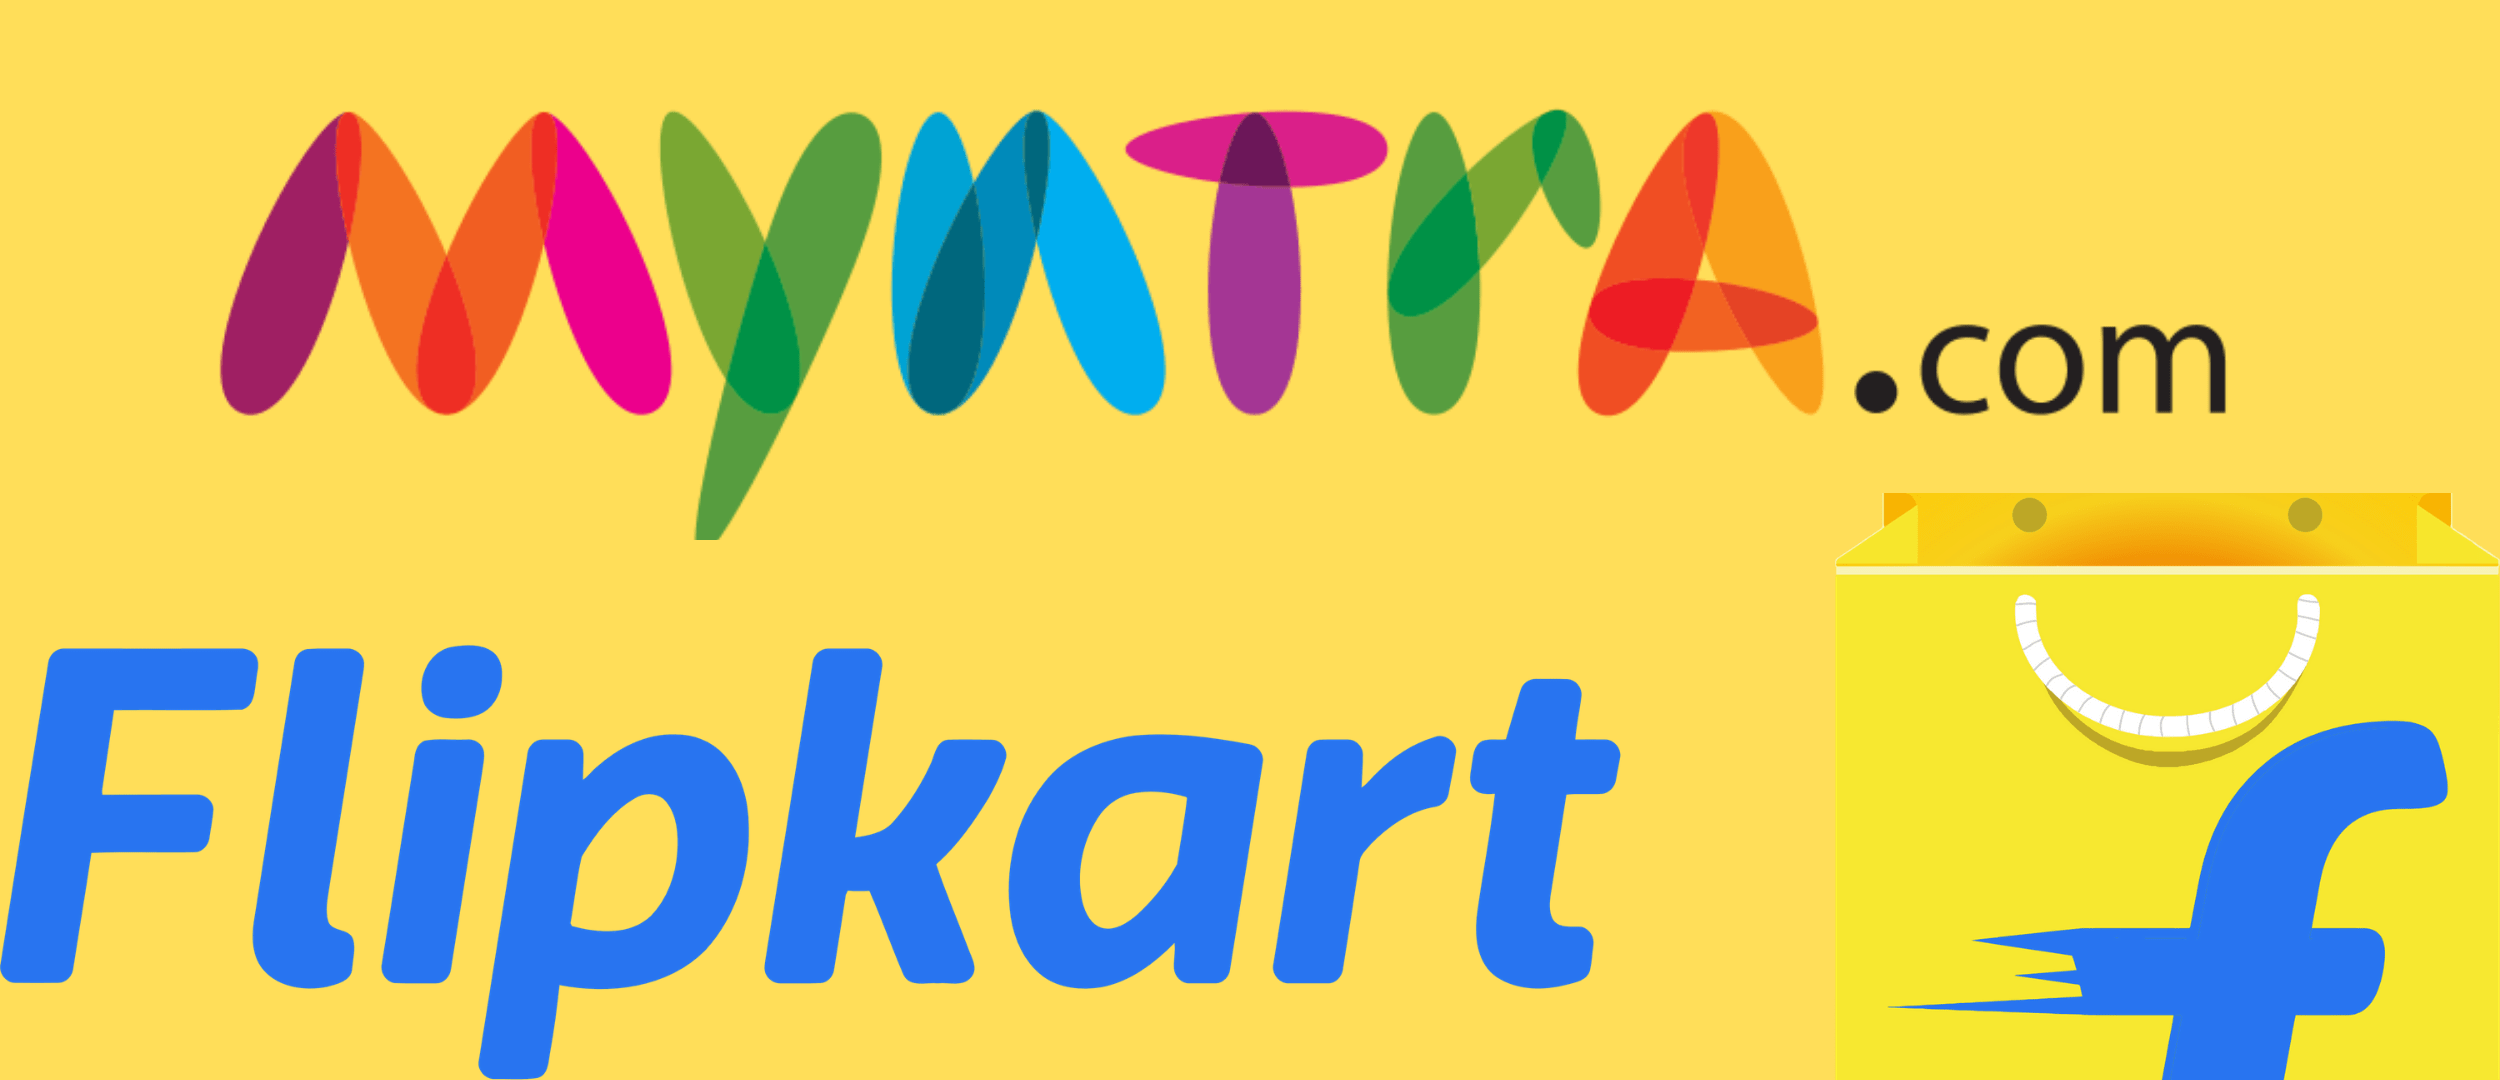 Flipkart and Myntra merger case study